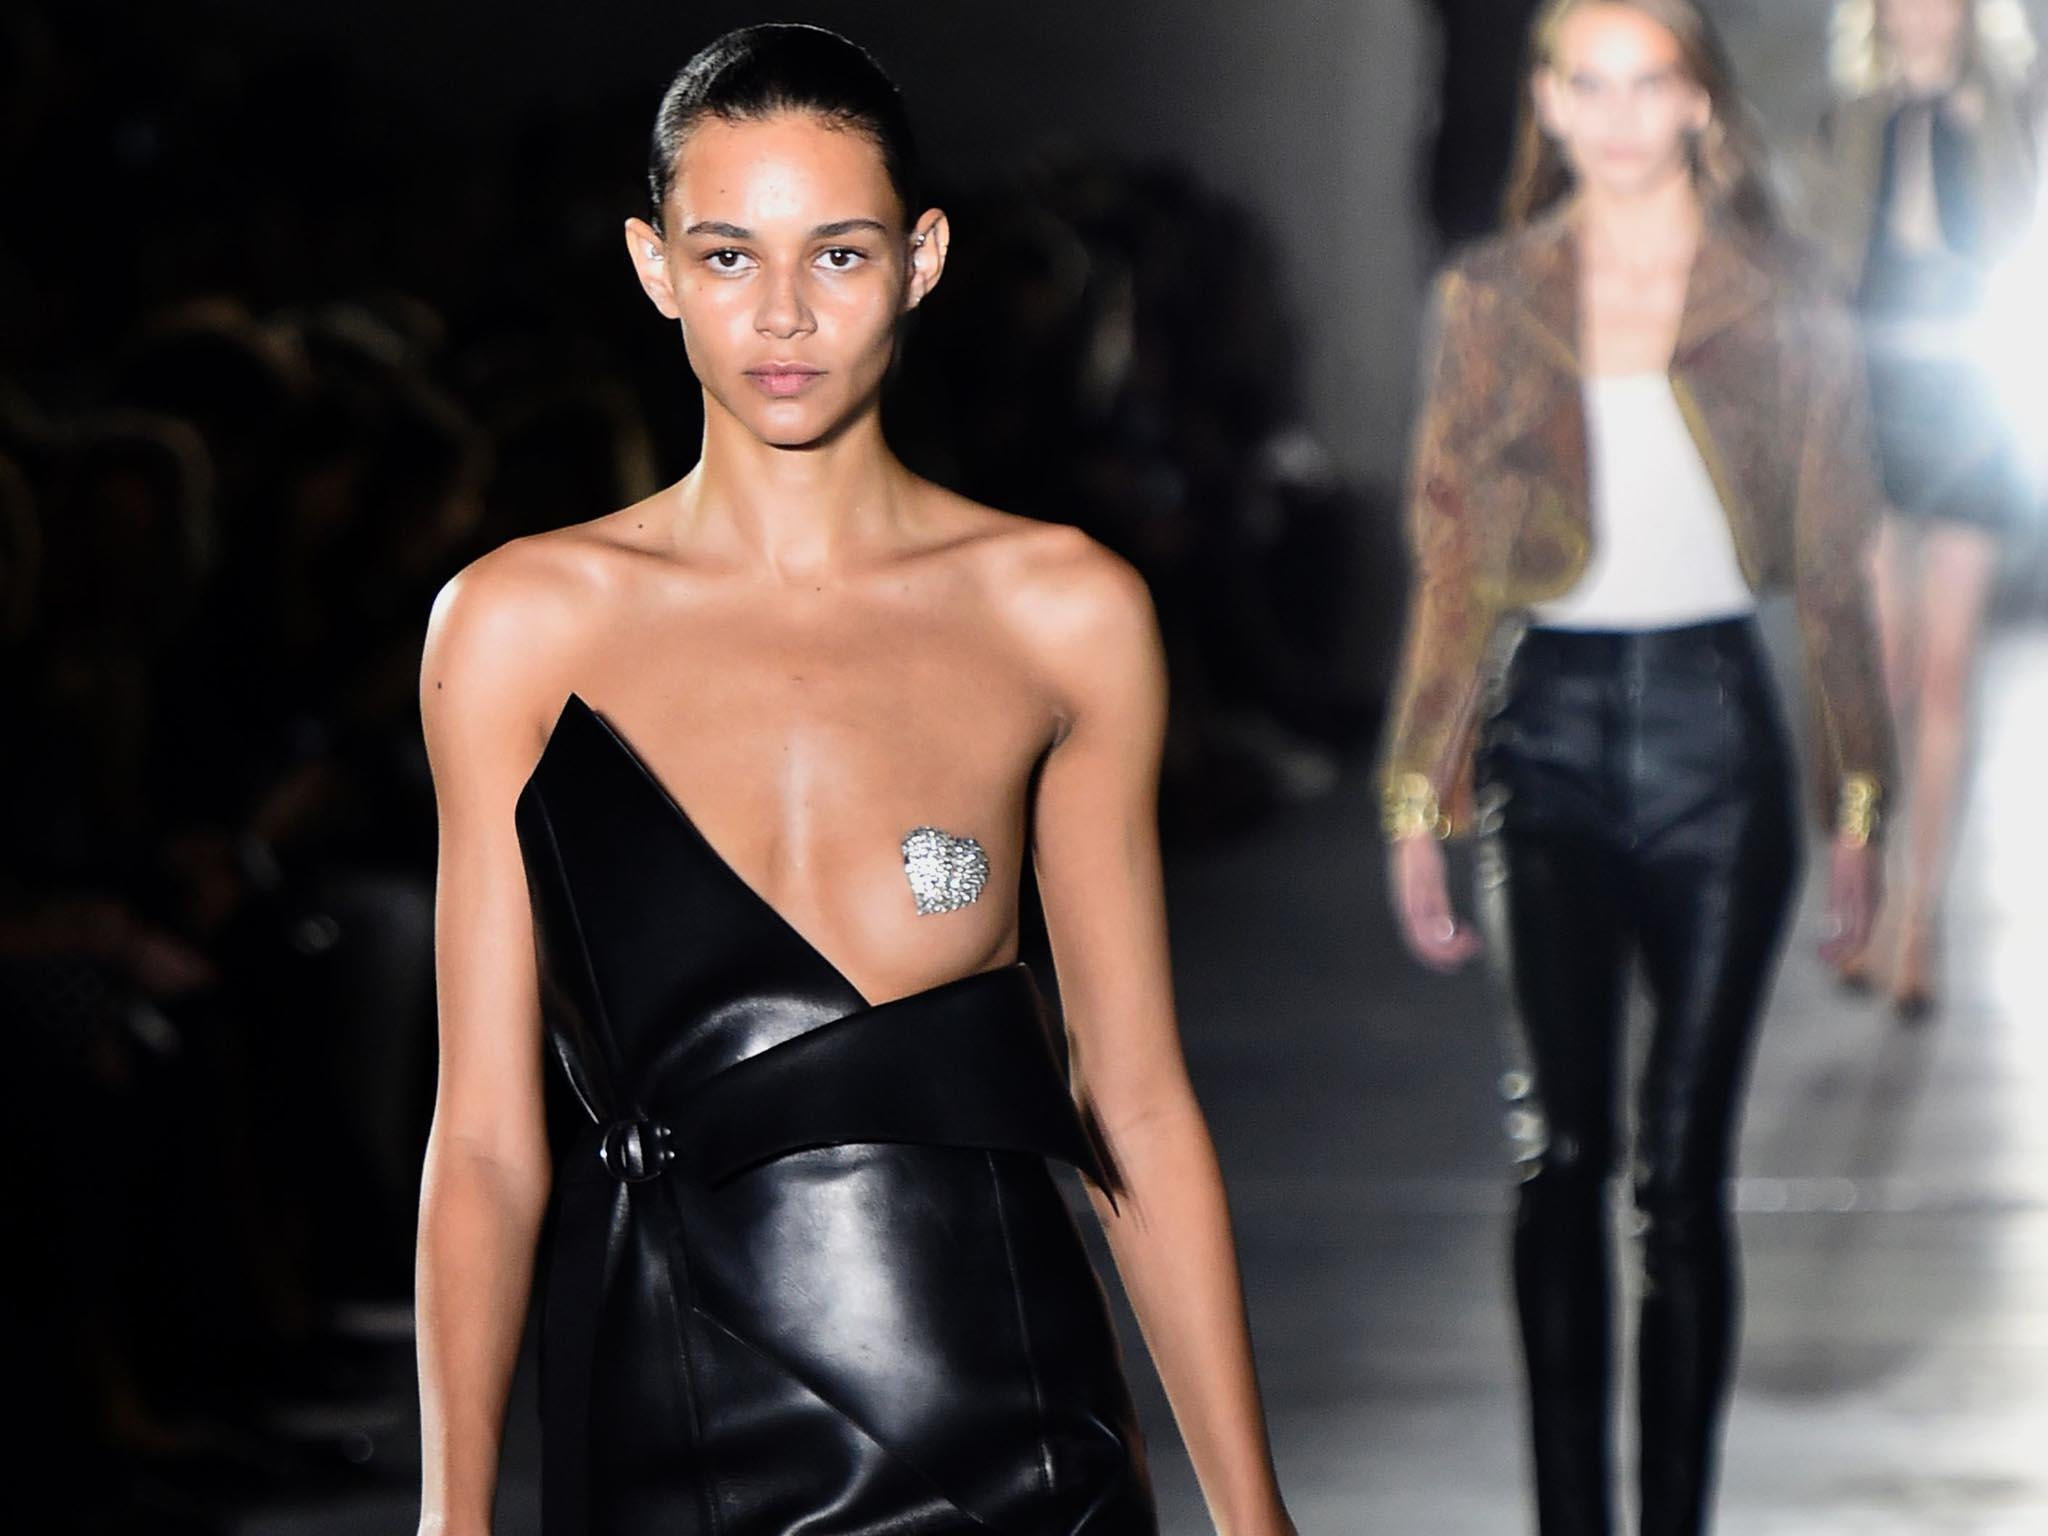 saint laurent unveils 'nip slip' dress – a glittery mono-boob outfit